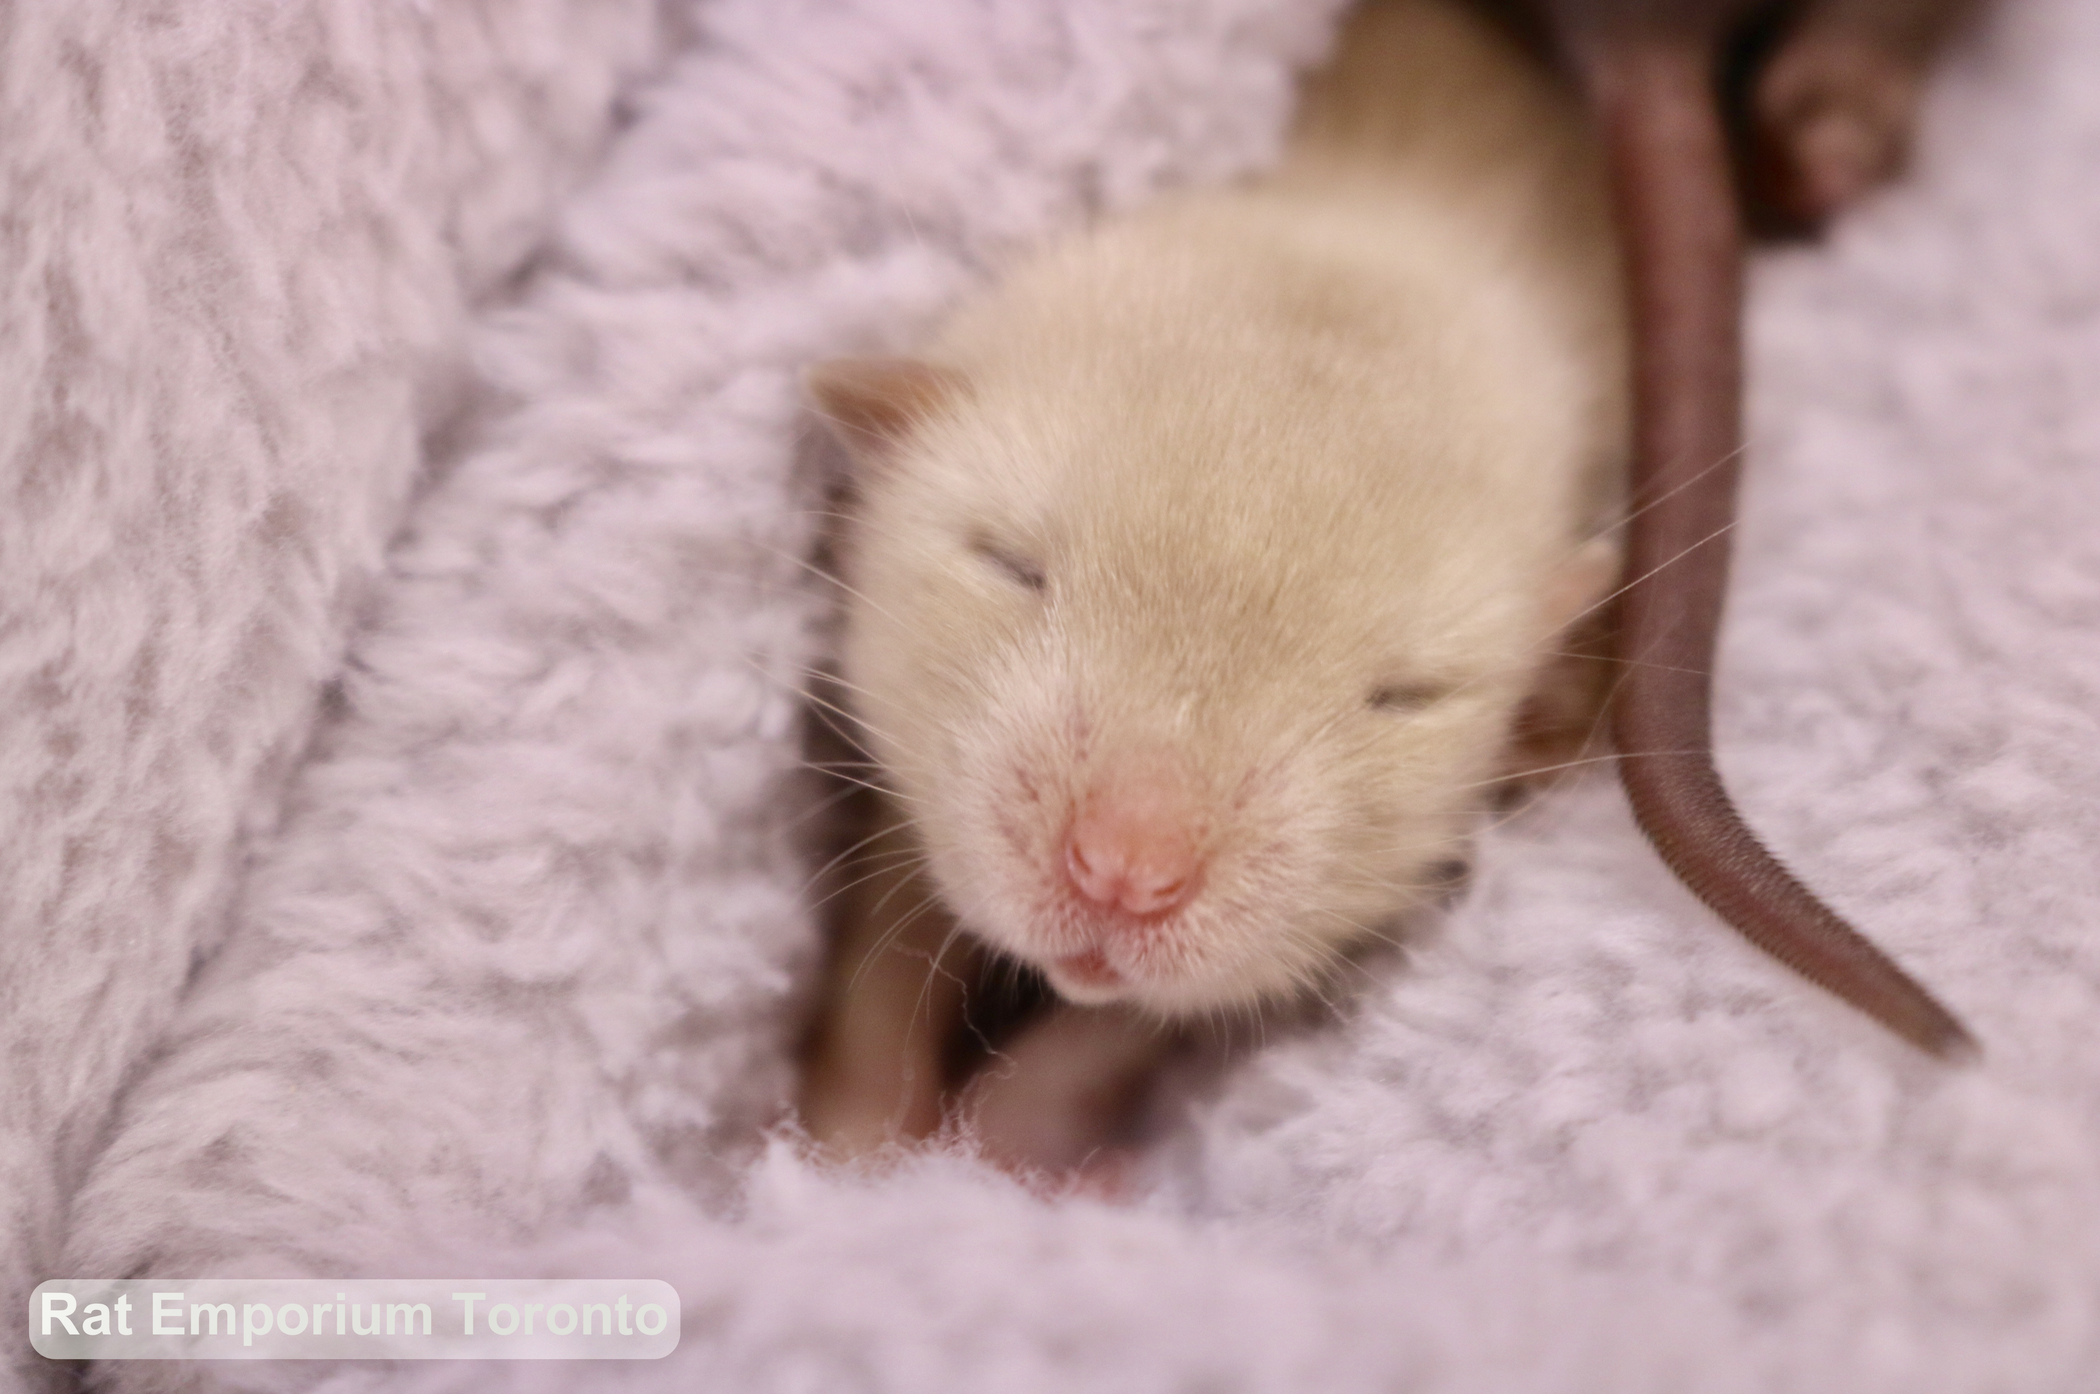 baby siamese and sable rats, dumbo and top ear bred at the Rat Emporium Toronto